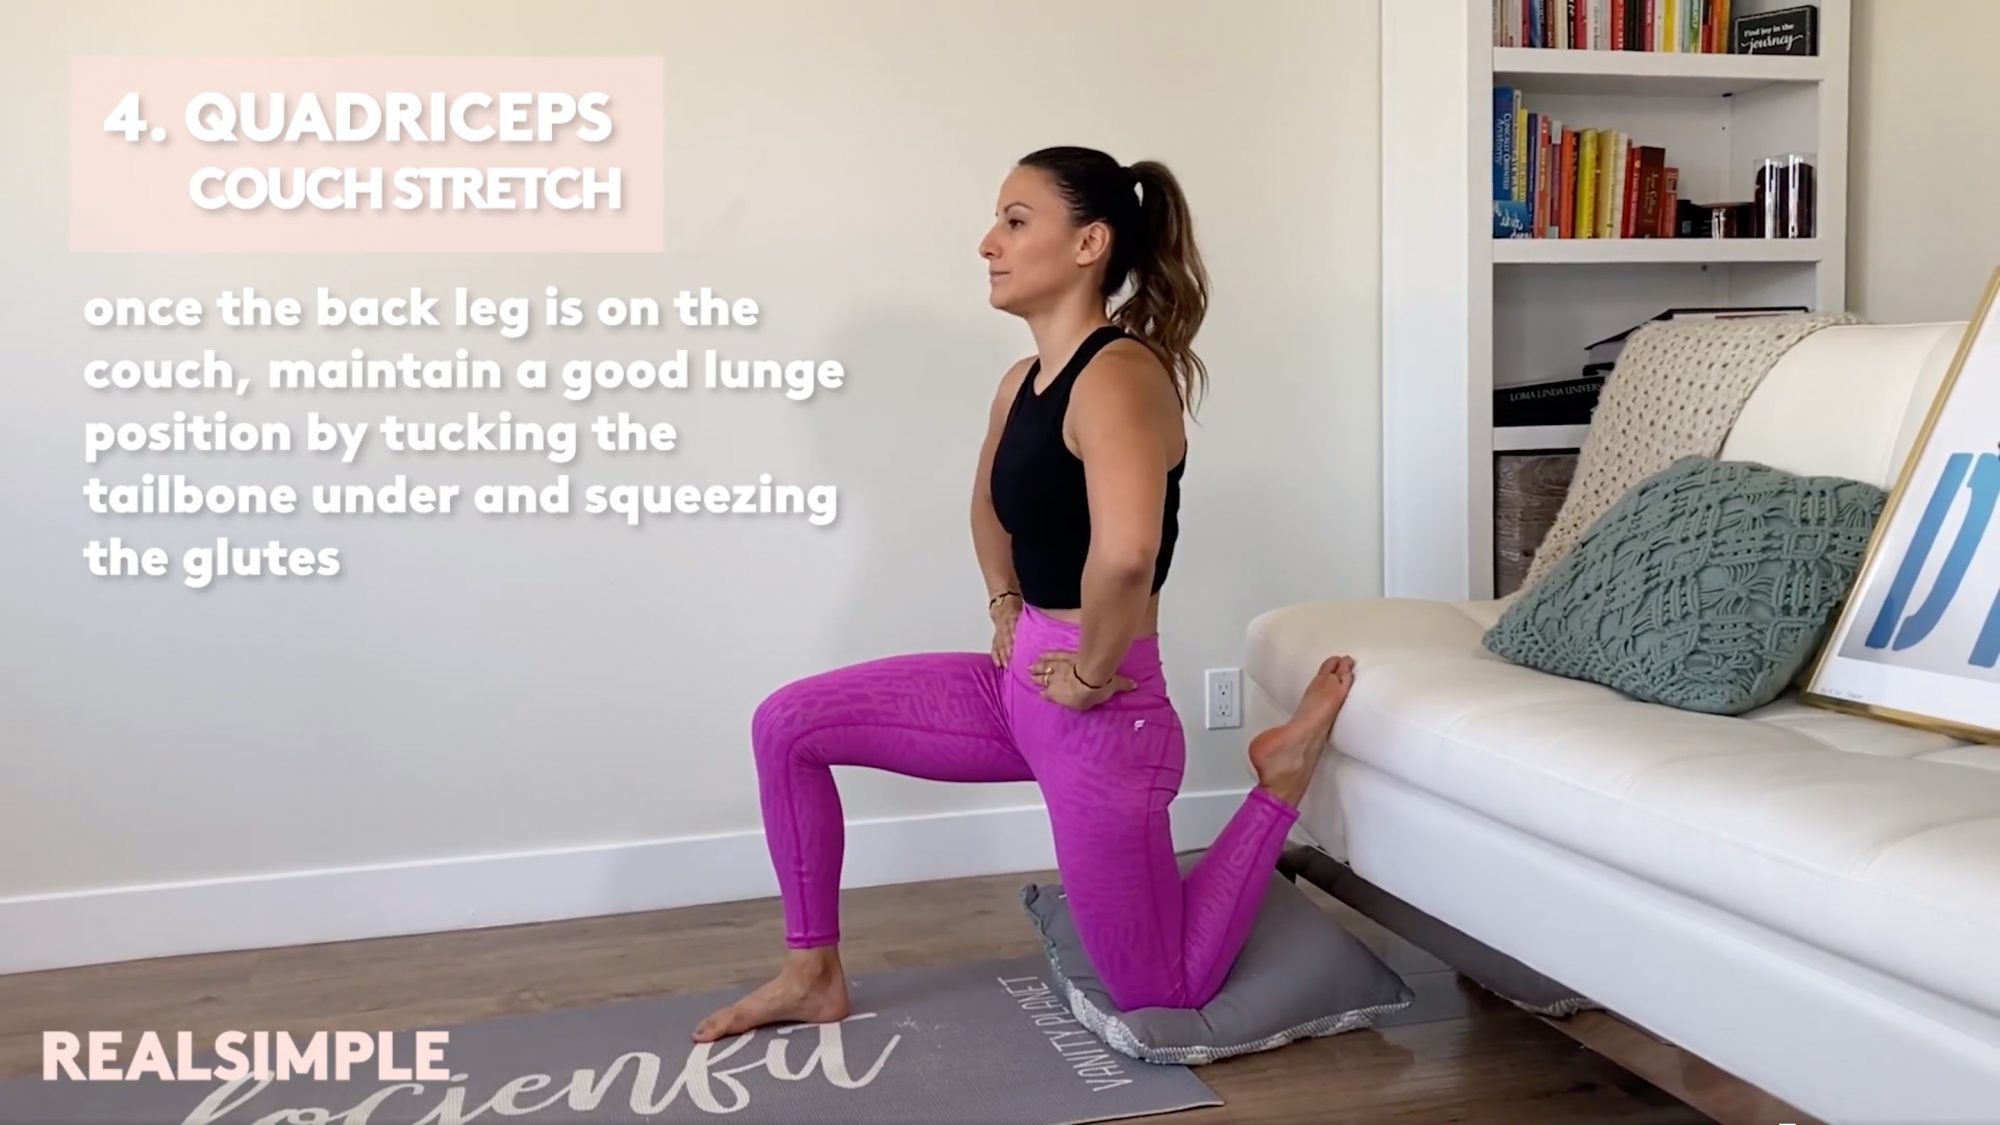 Quadriceps Couch Stretch for back pain